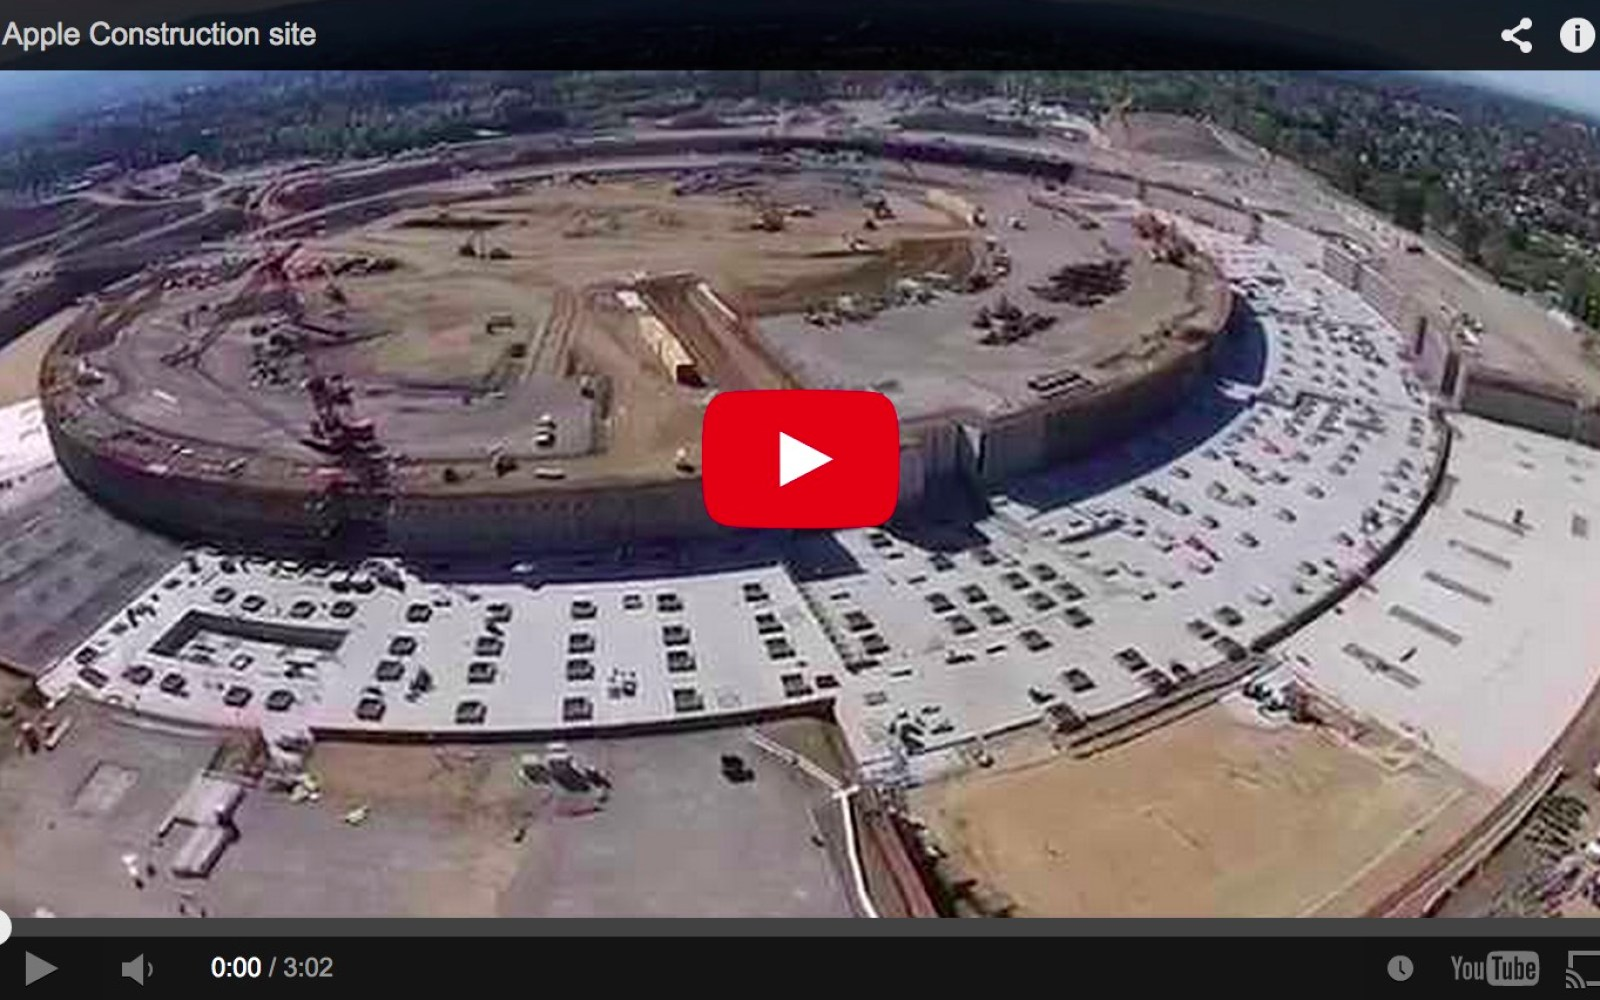 Majority of Apple Campus 2 foundation laid according to latest drone video